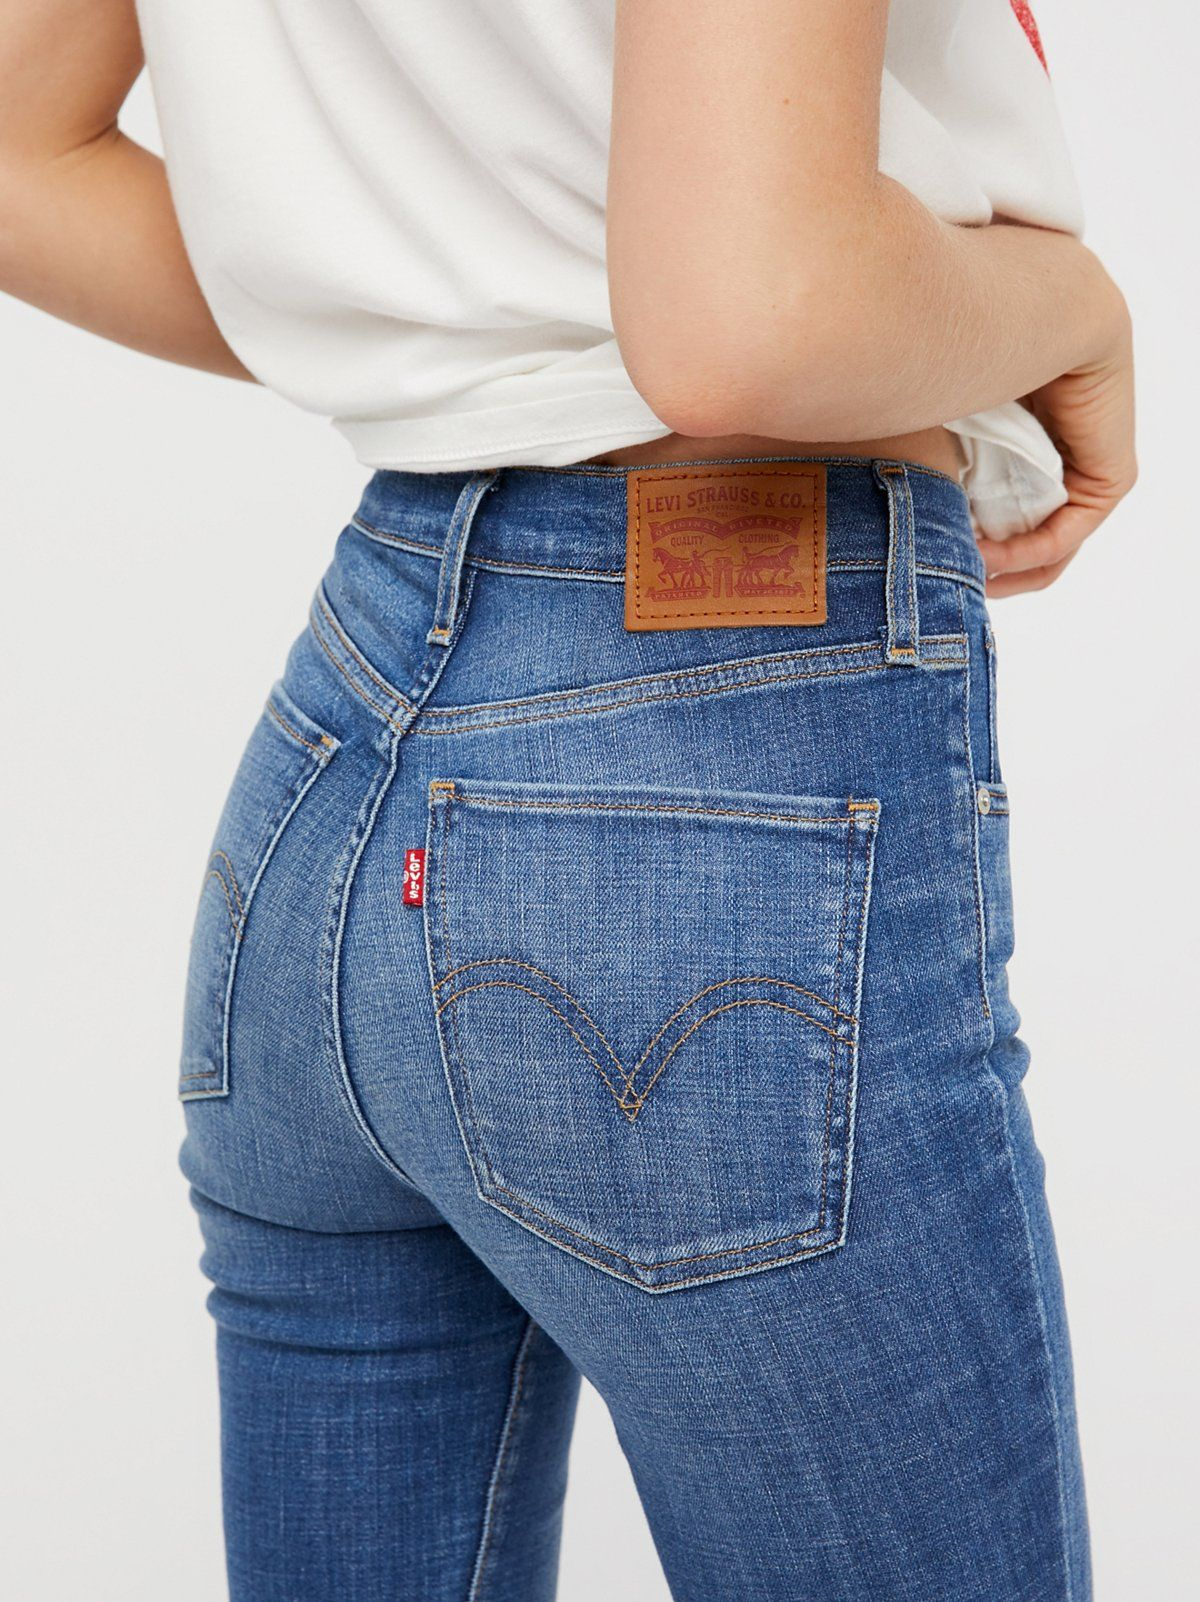 Levi S Mile High Super Skinny Fitting Slim Through The Hips And Thighs These Skinnes Are The Perfect Super Skinny Jeans Levis High Waisted Jeans Super Skinny